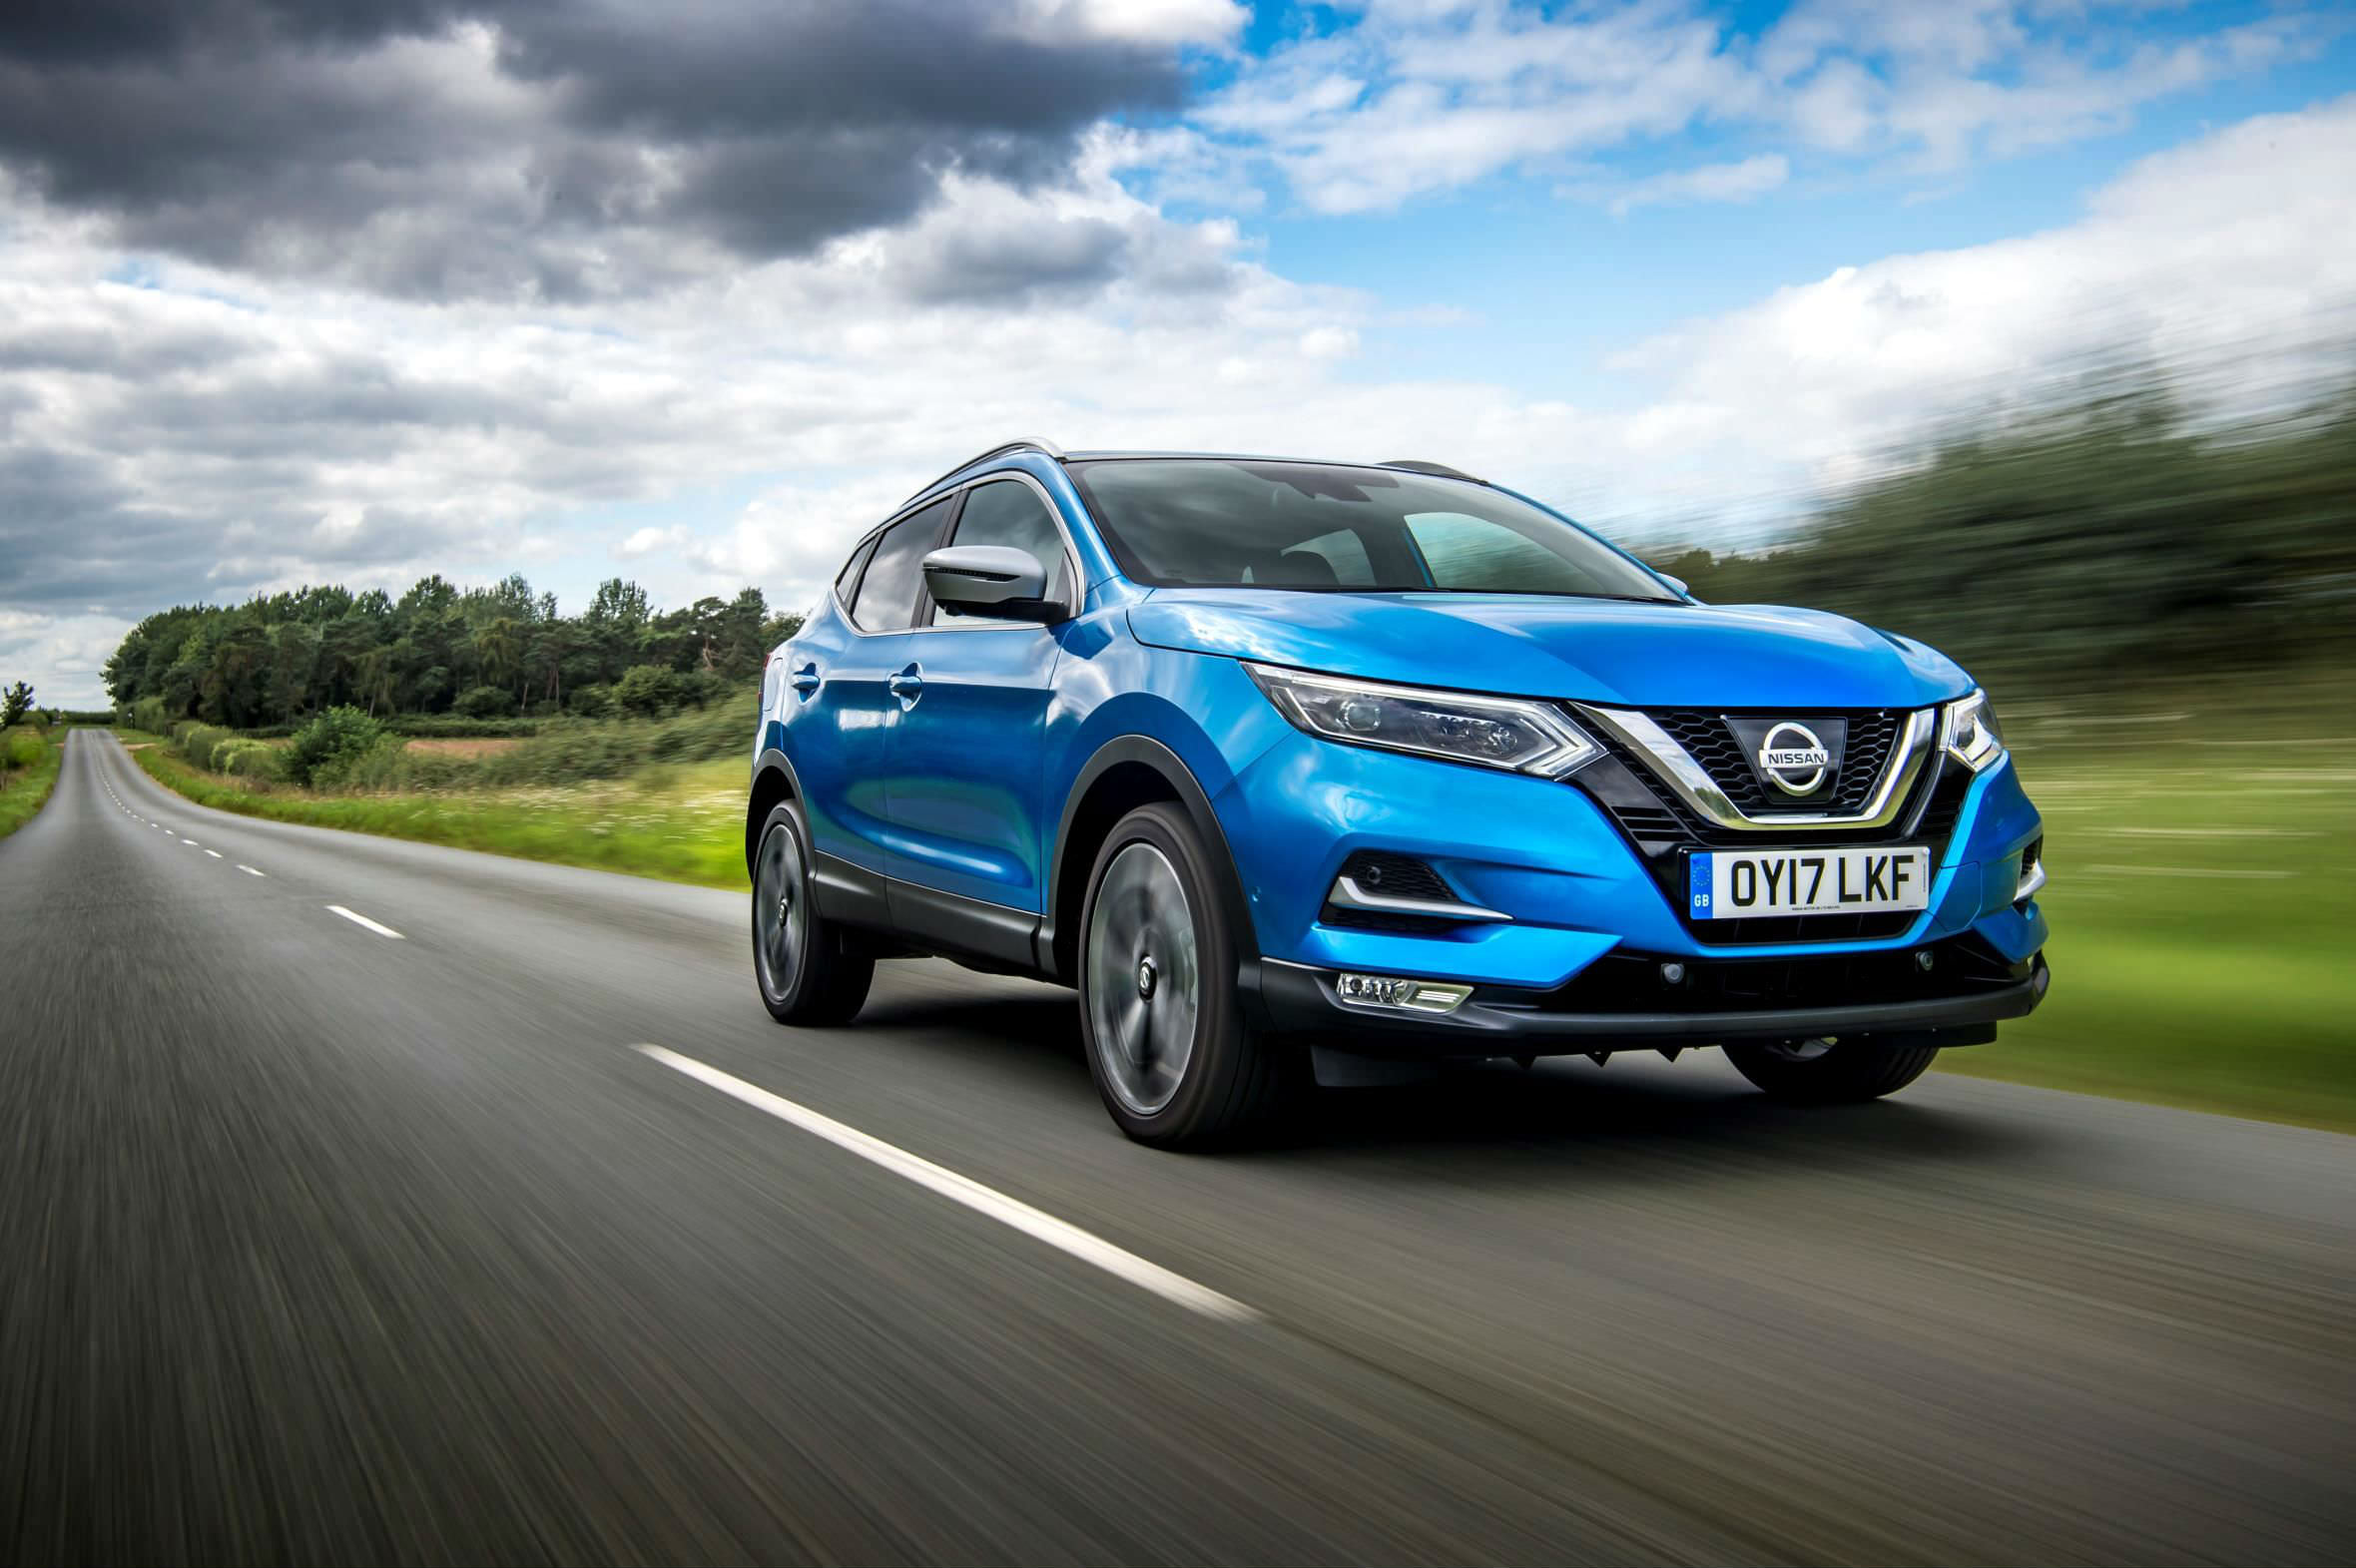 Guide to used SUVs with panoramic sunroof - Blue Nissan Qashqai